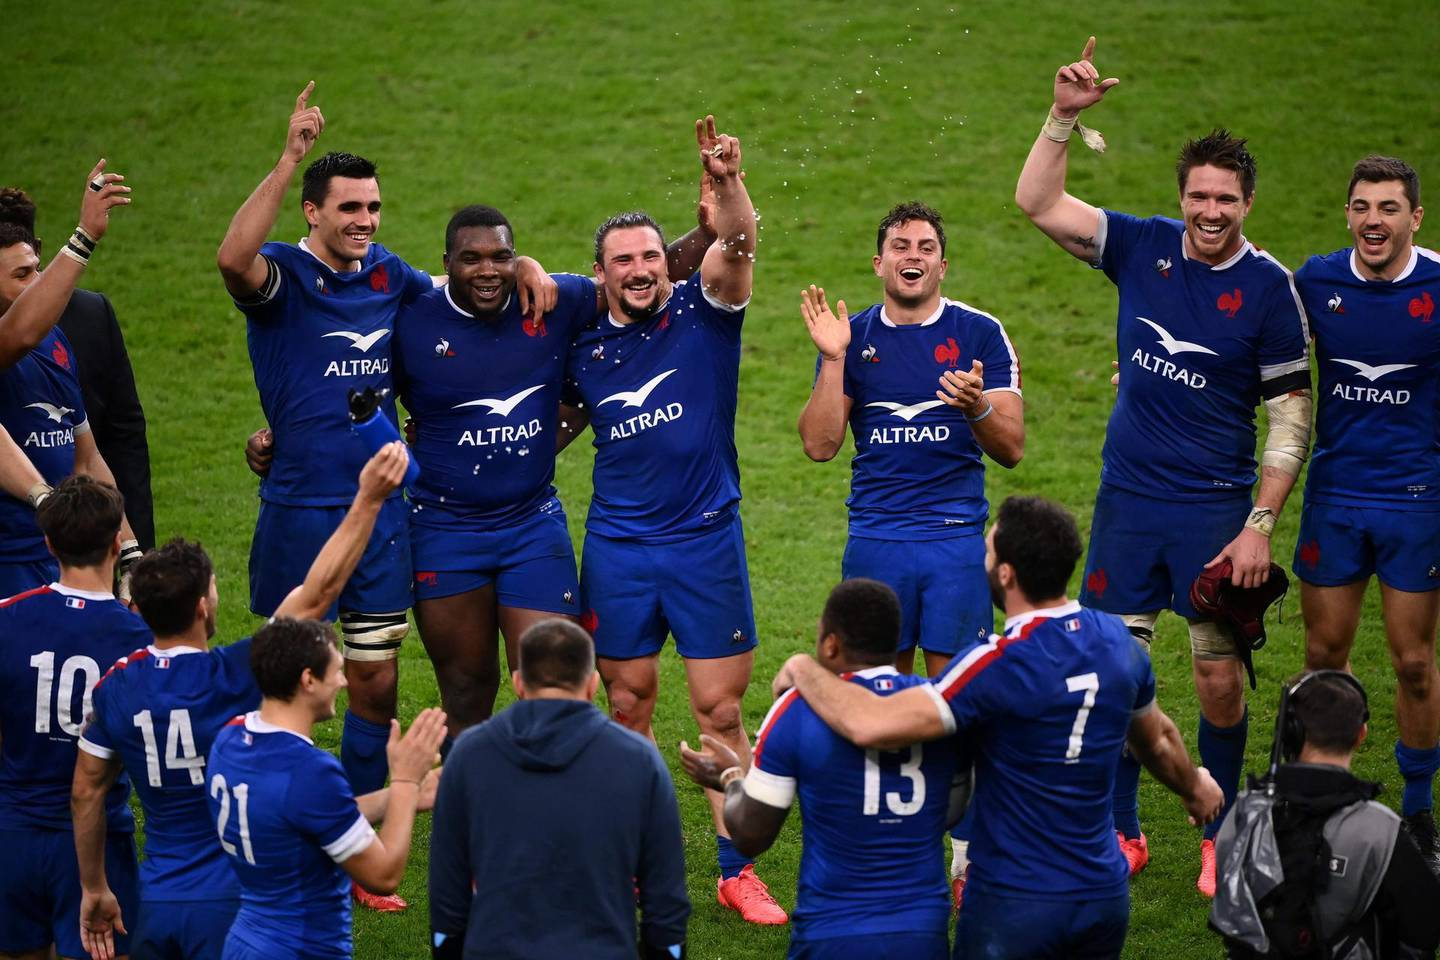 France's team players celebrate after winning at the end of the Six Nations rugby union tournament match between France and Ireland at the stade de France, in Saint Denis, on the outskirts of Paris, on October 31, 2020. / AFP / FRANCK FIFE